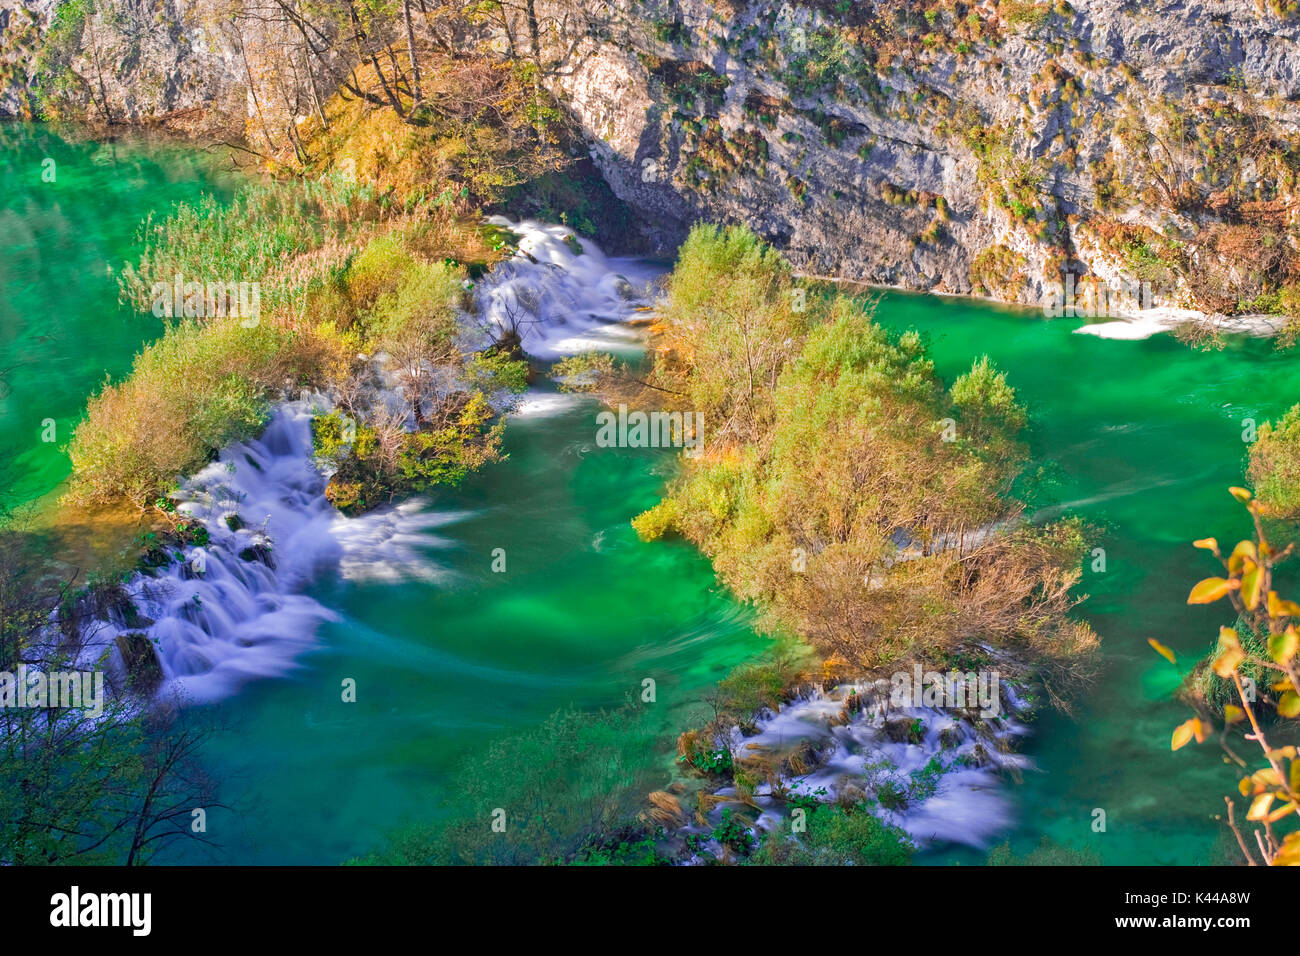 Plitvice Lakes National Park in Croatia is located in an area of dense forests , rich in rivers , lakes and waterfalls, and especially in autumn, creating a paradise of extraordinary natural beauty that is part of the list of UNESCO World Heritage Site. - Stock Image